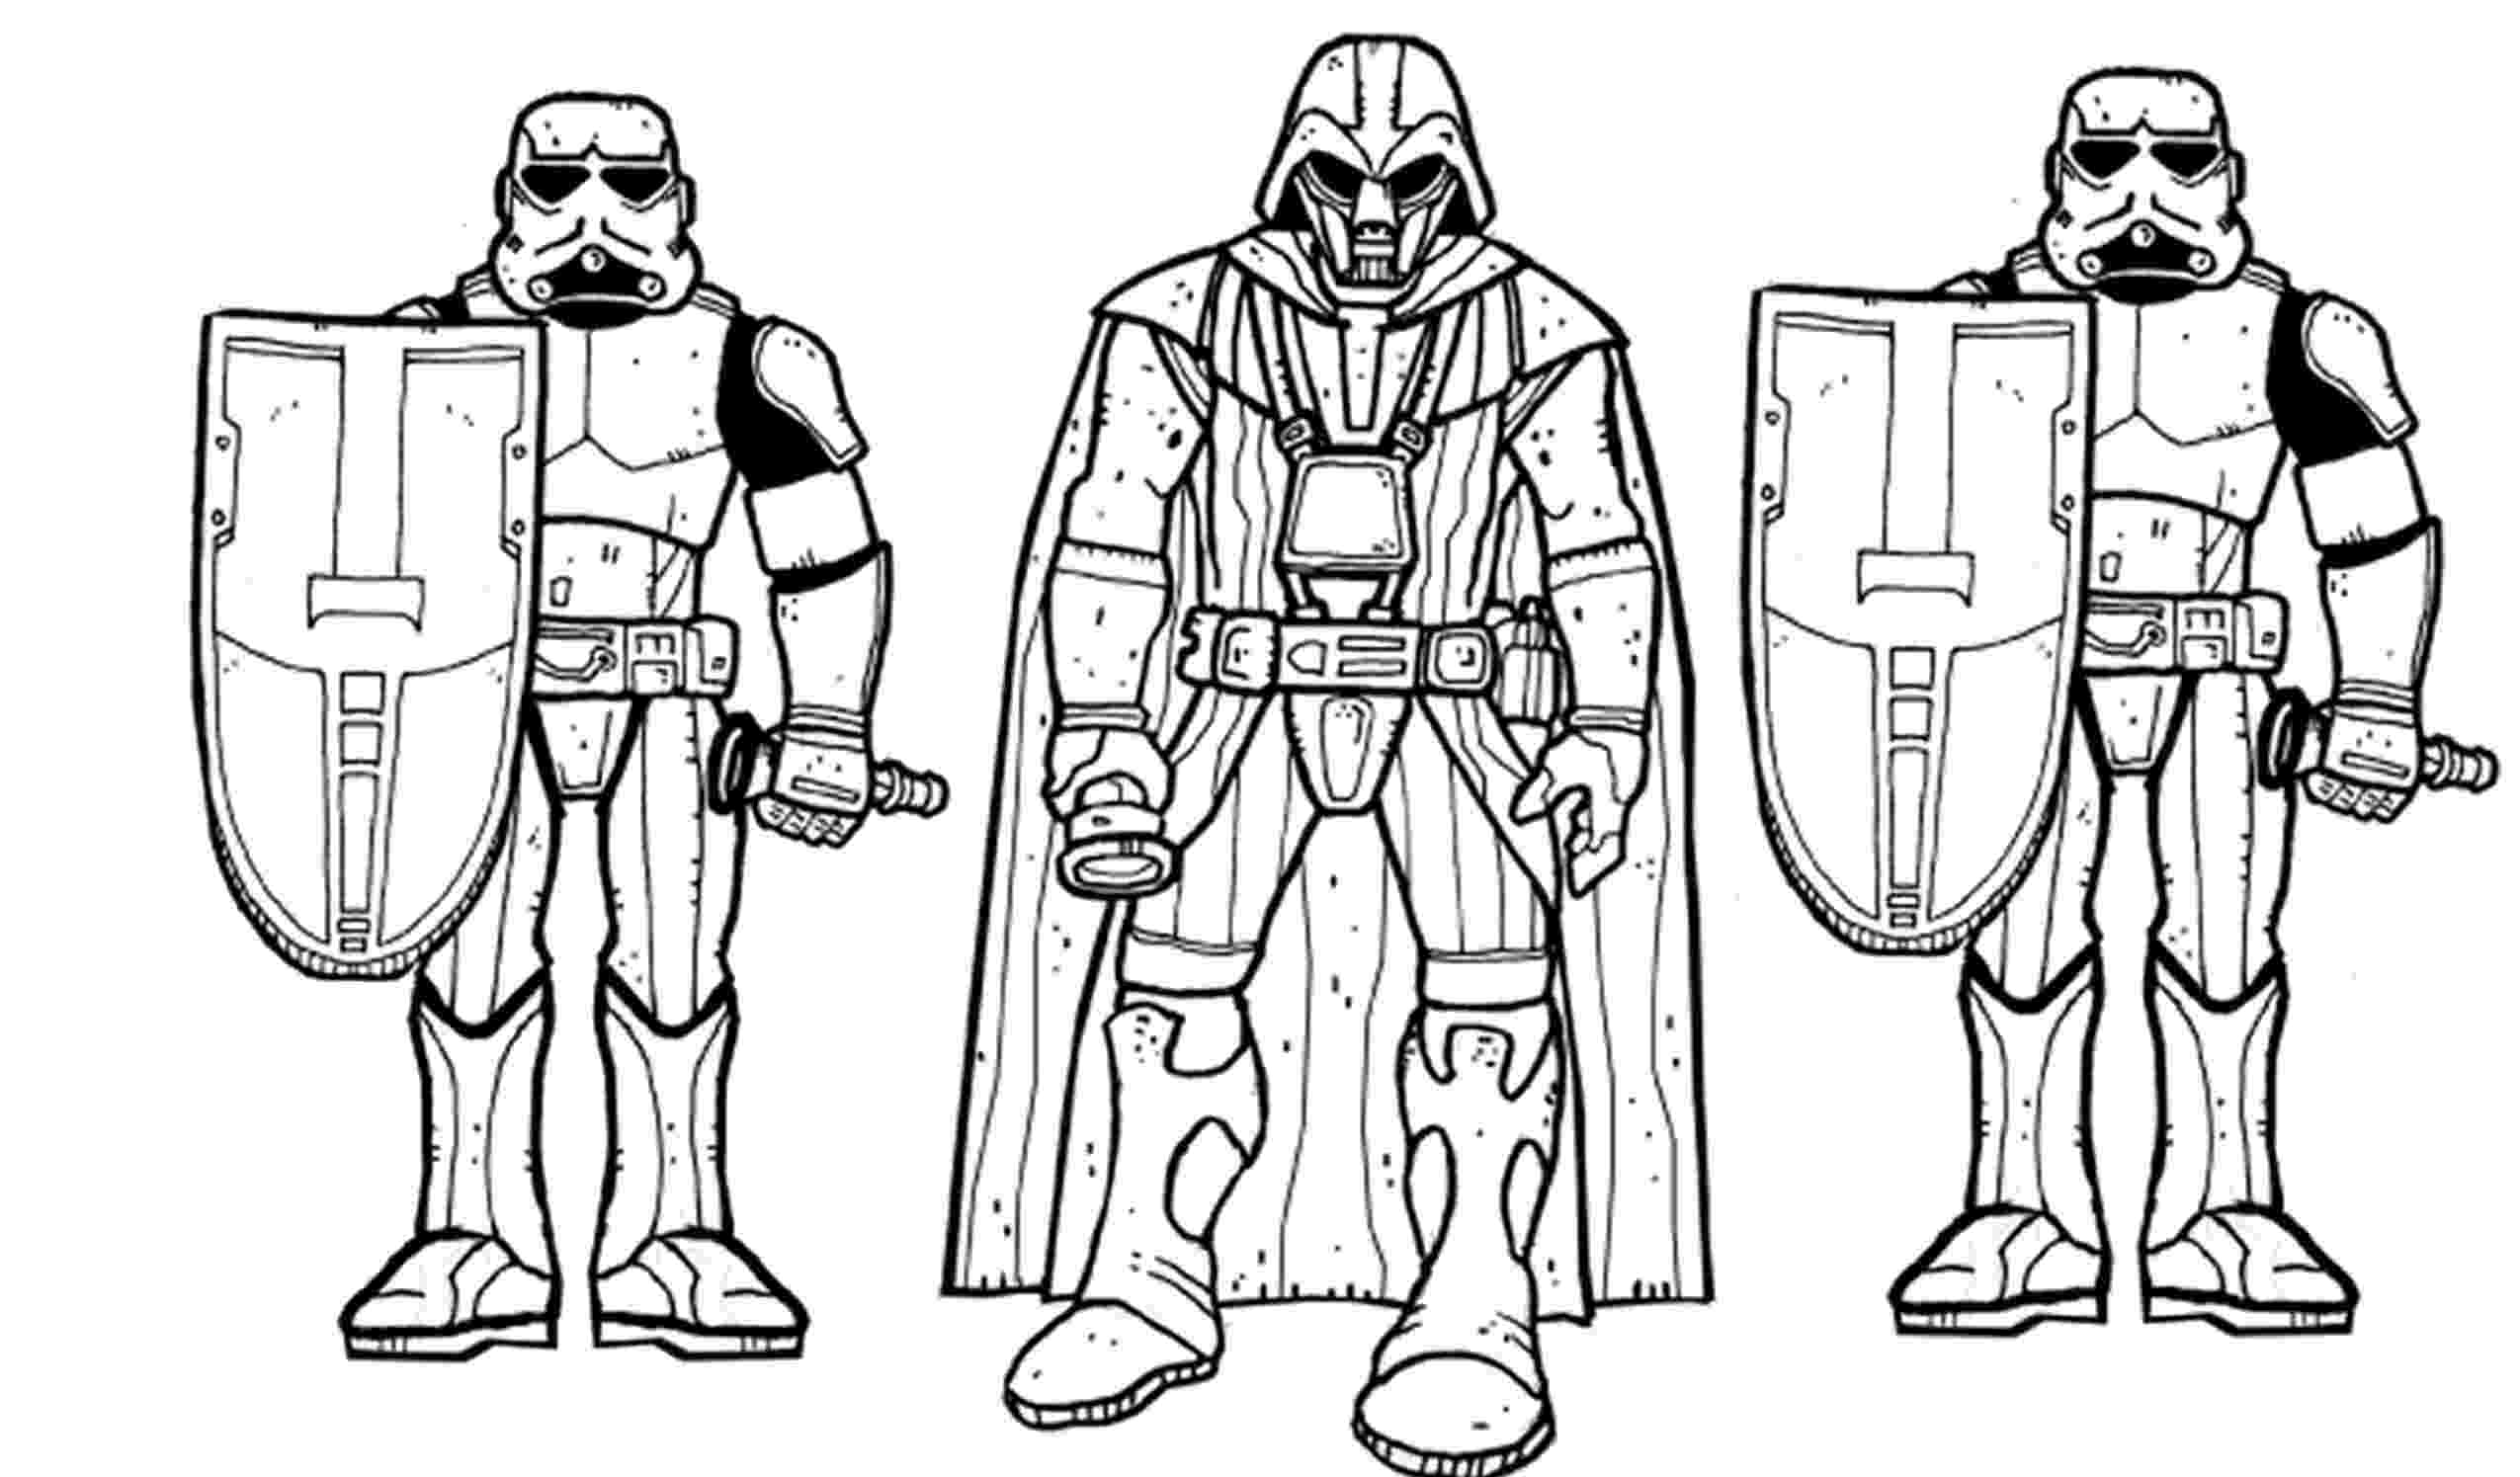 darth vader pictures to color darth vader coloring pages the sun flower pages pictures darth color vader to